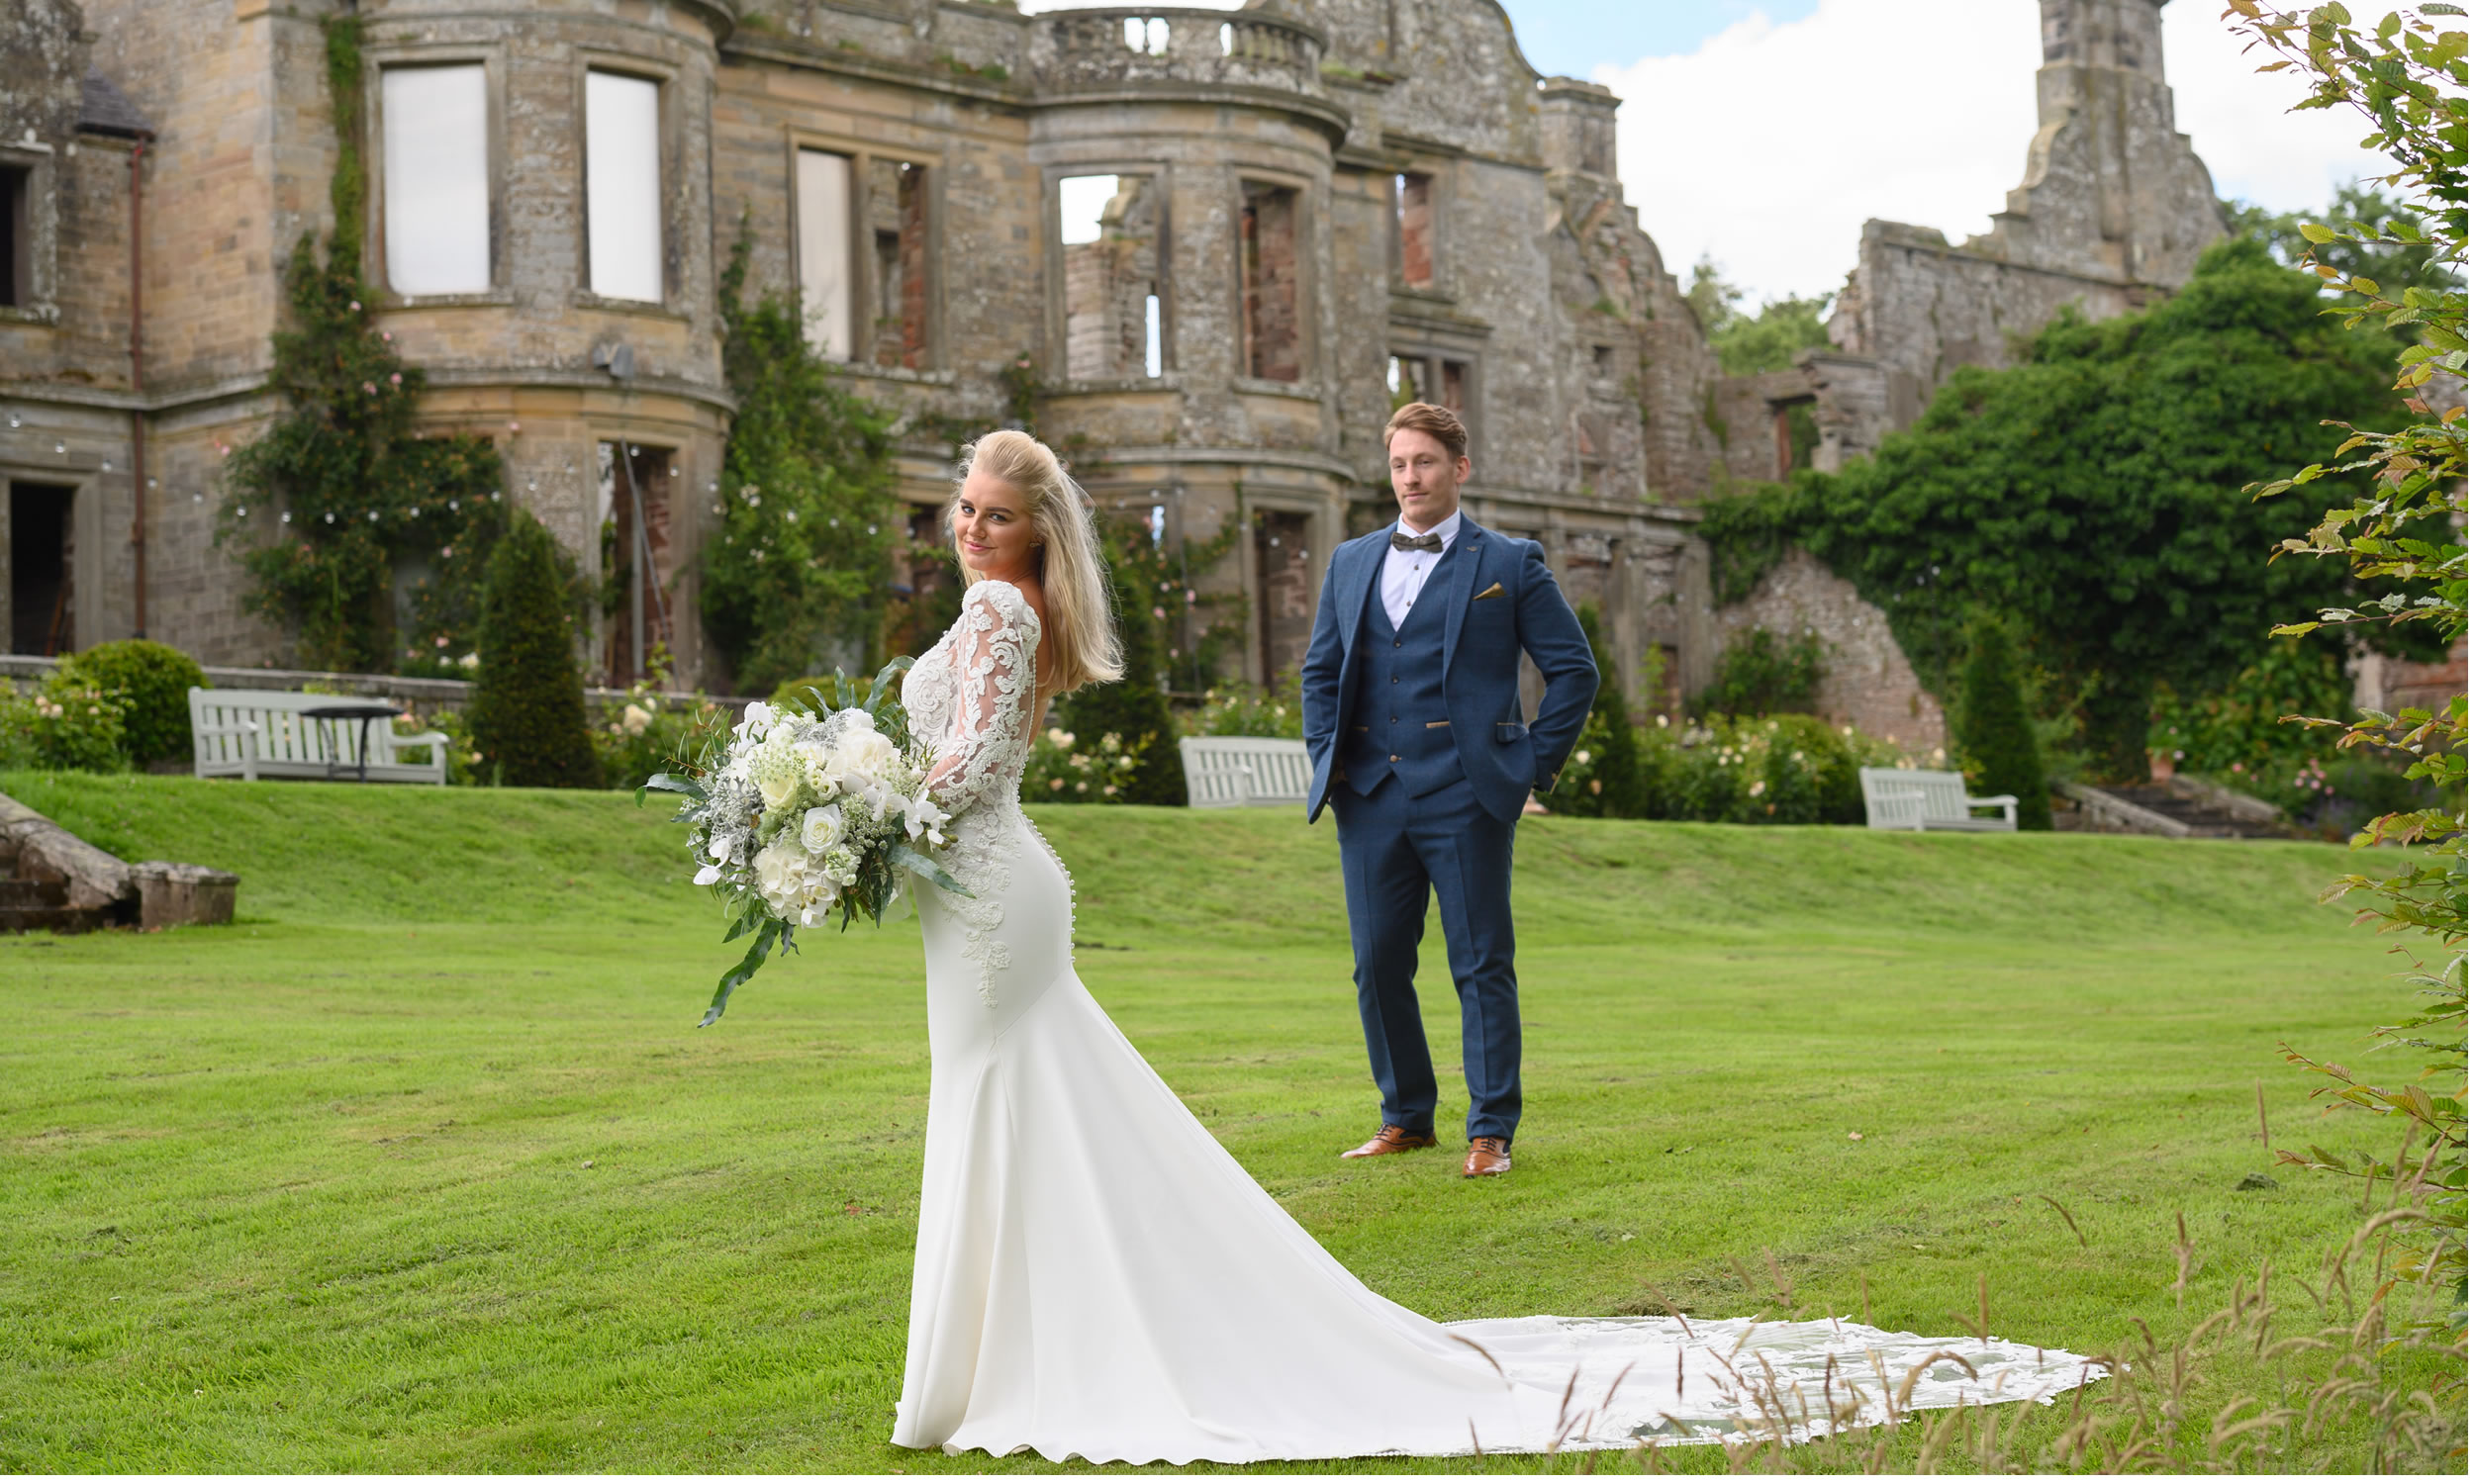 Bride and groom dressed by Carols Bridal Boutique Carlisle